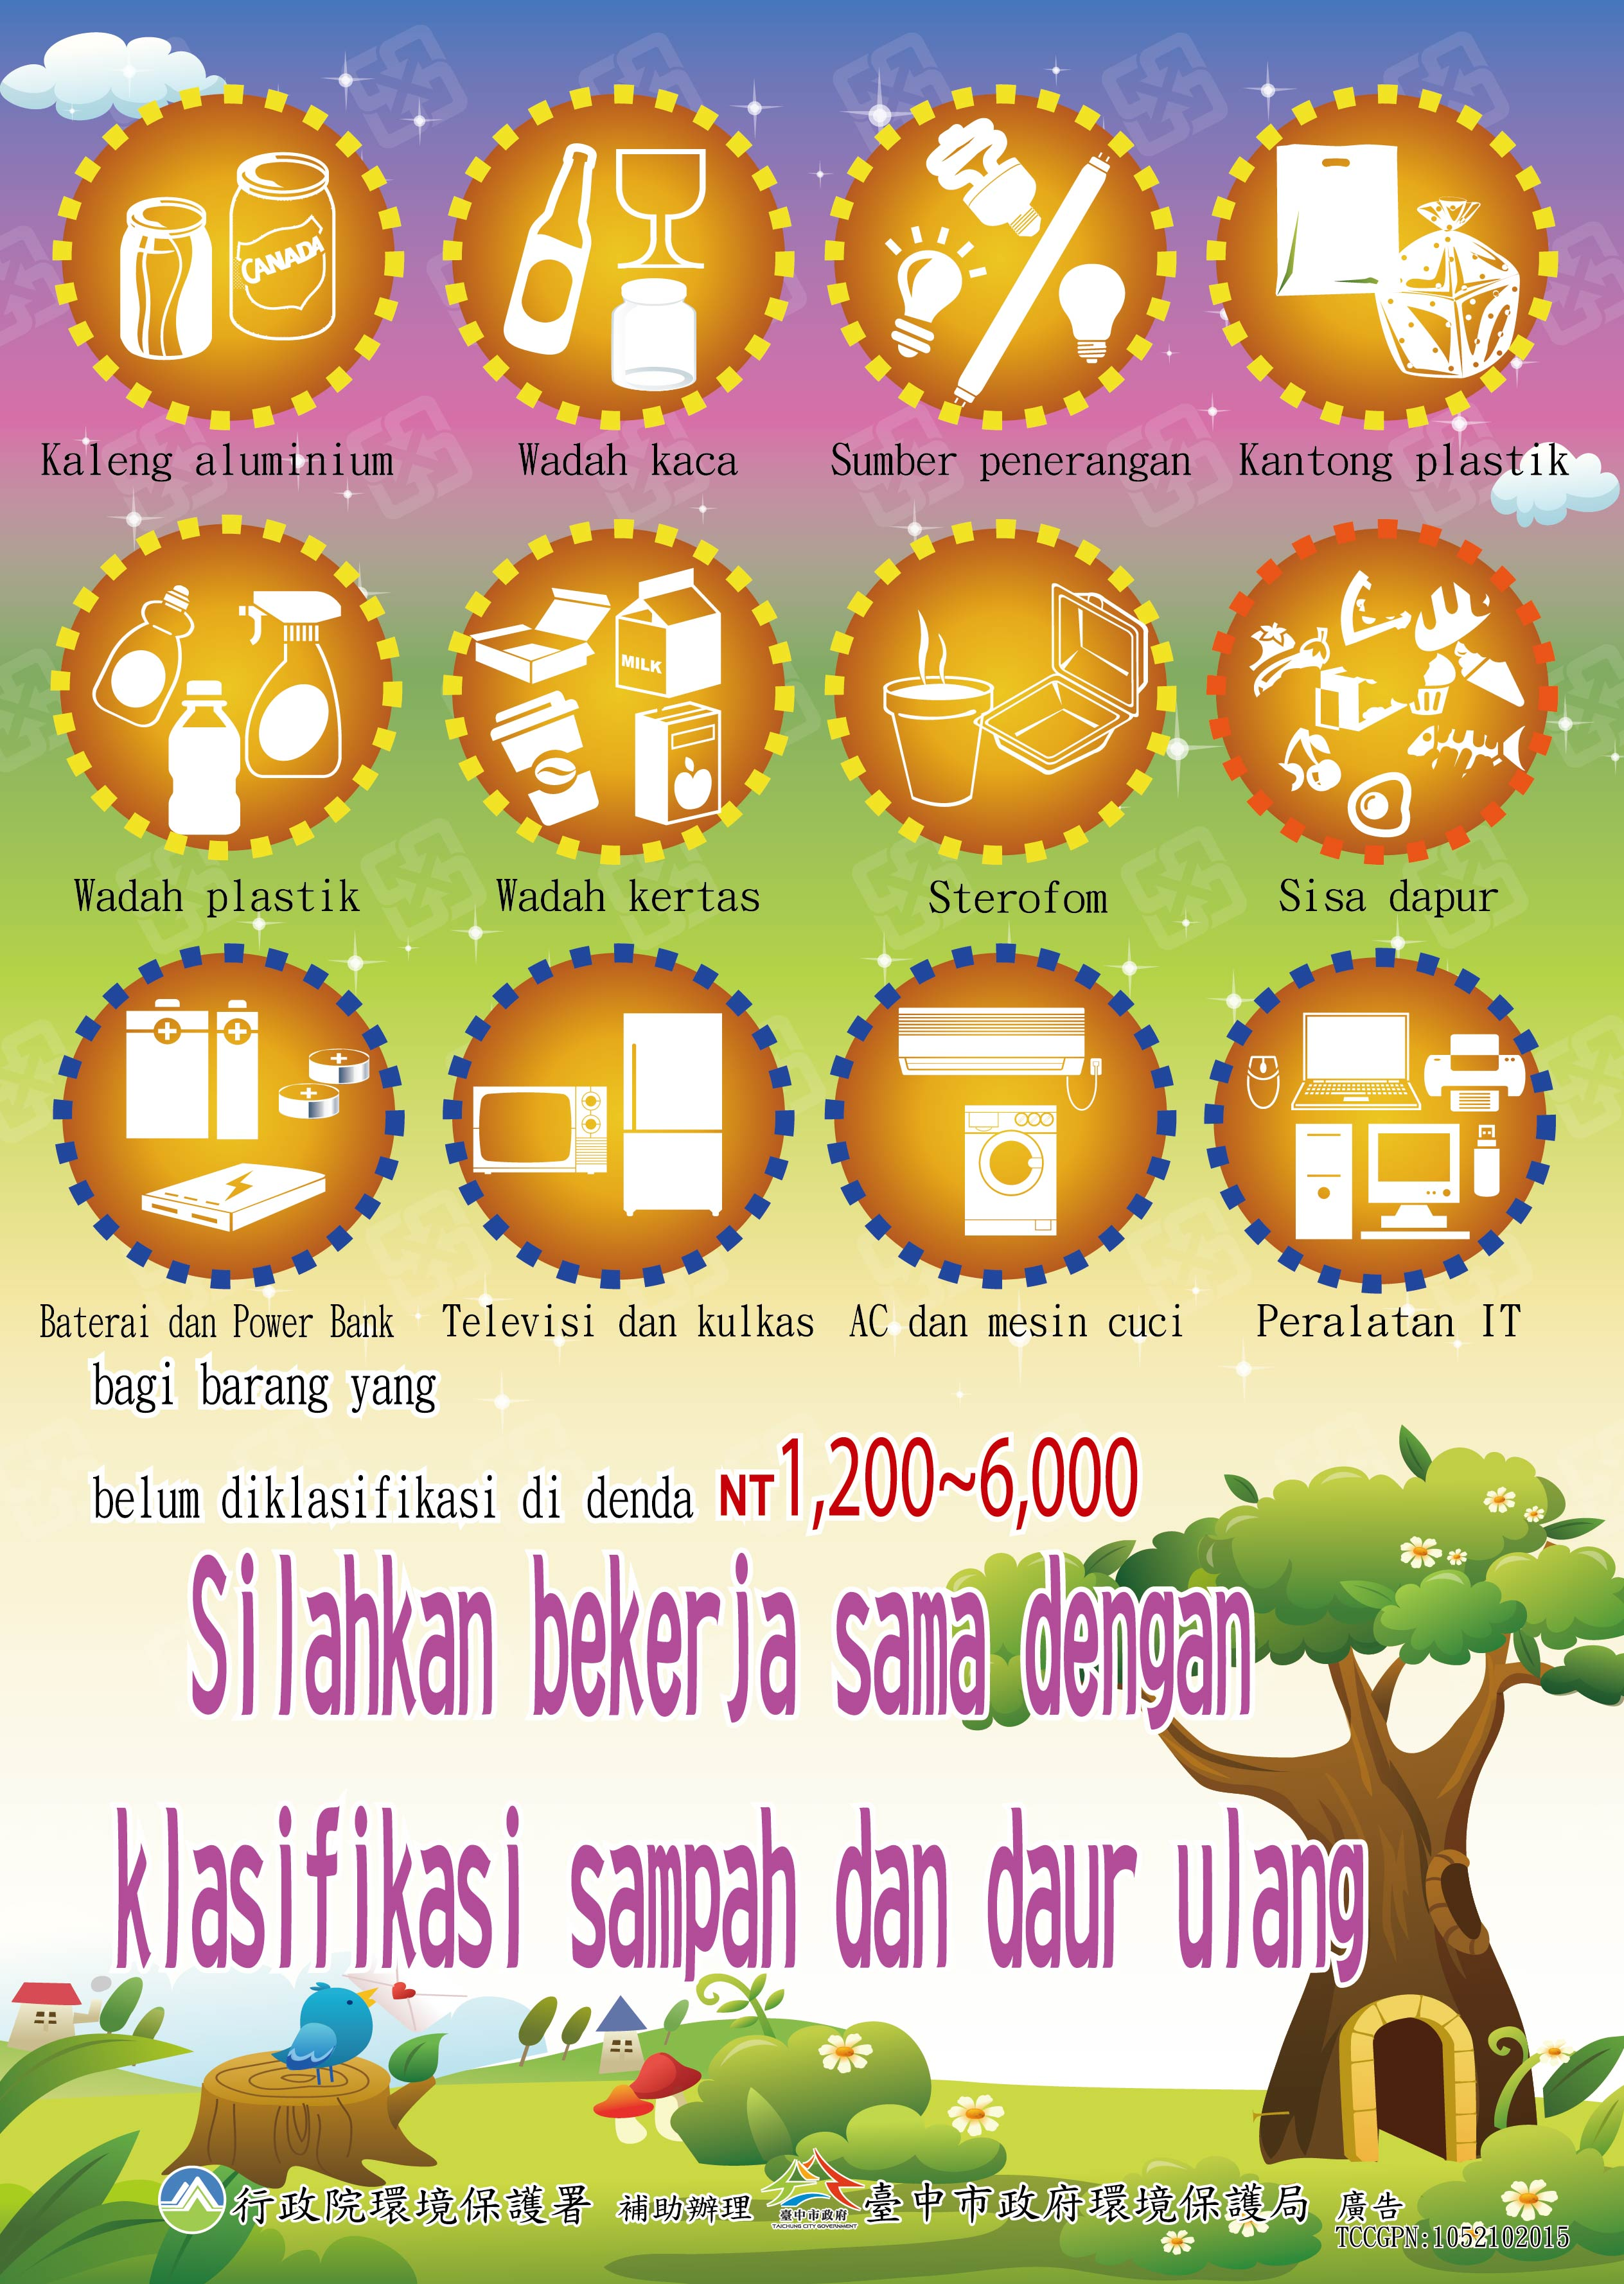 Please sort garbage for recycling.(Indonesian)